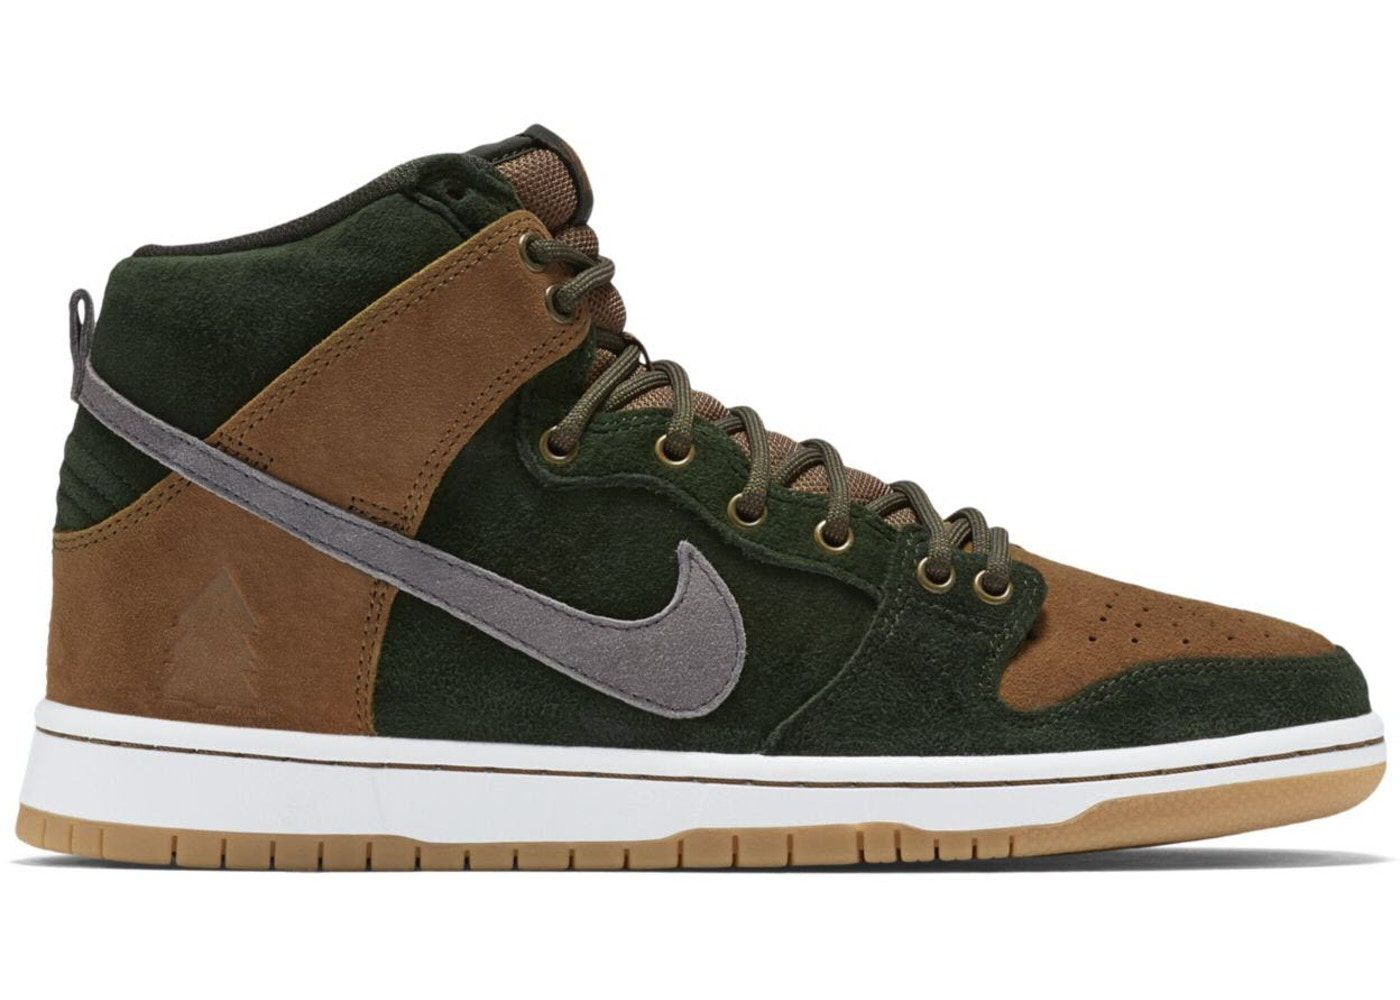 timeless design 15961 d5fbc Nike Dunk SB High Homegrown Ale Brown